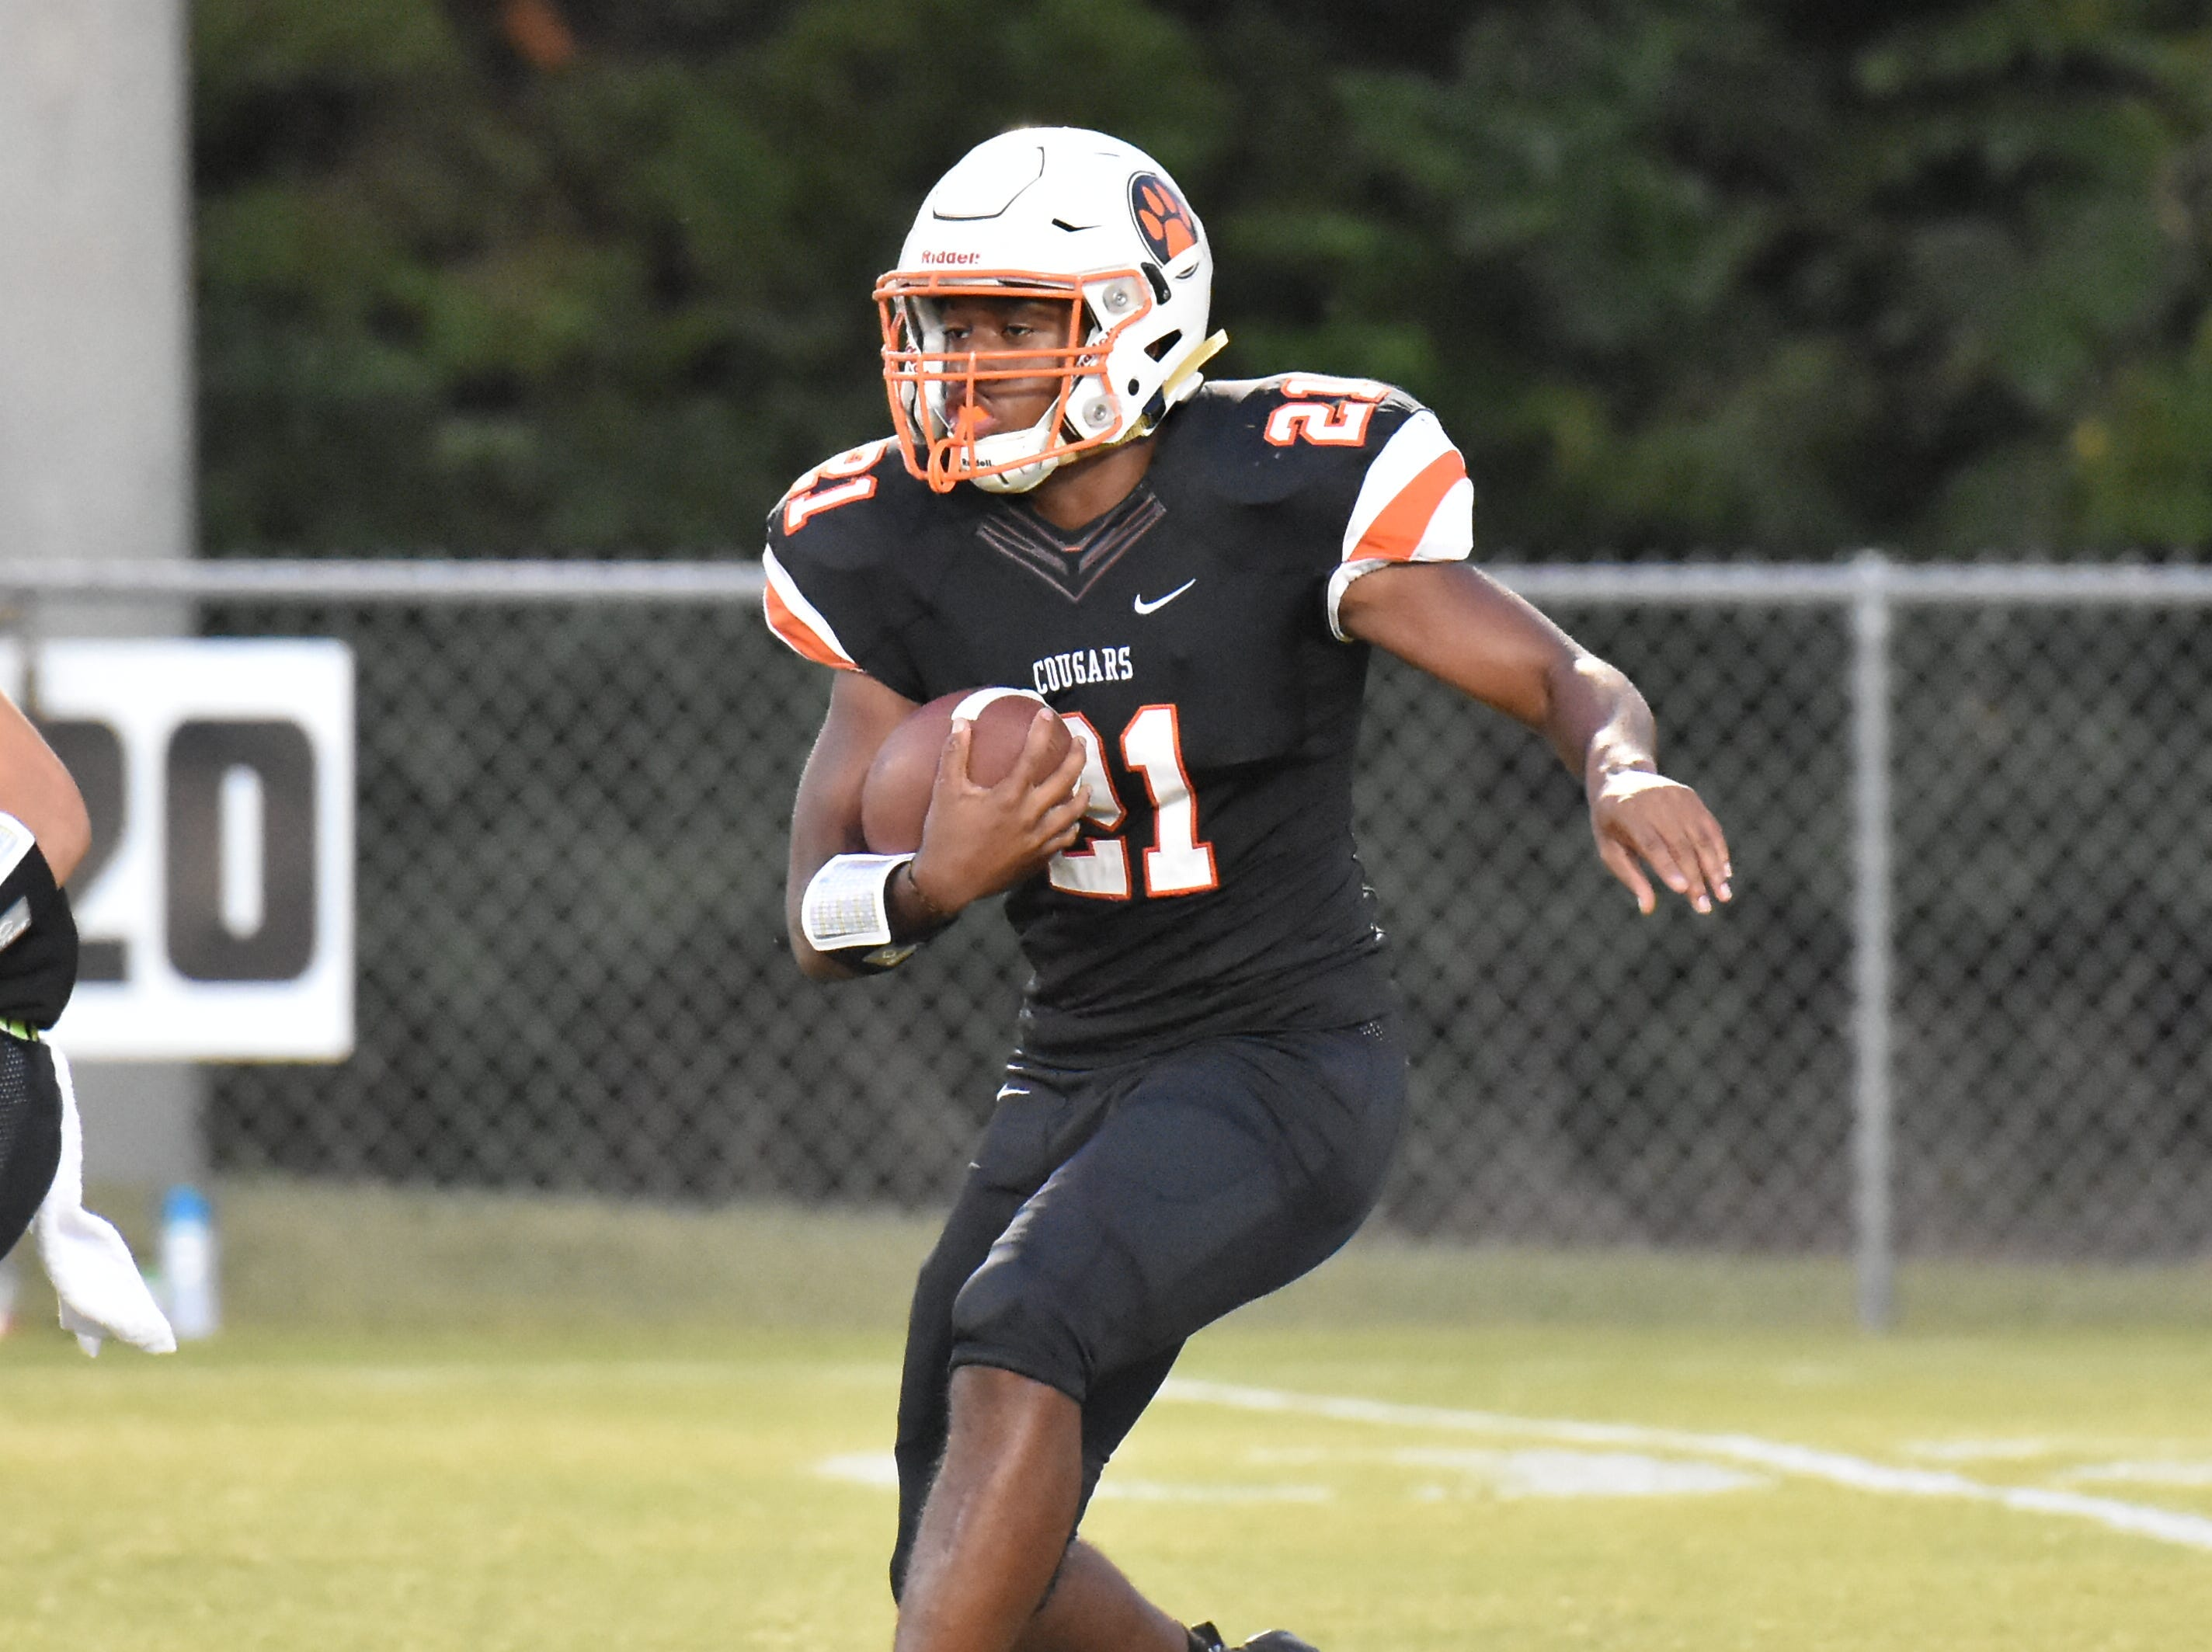 MTCS running back Kemari McGowan carries the ball against Ezell-Harding Friday night in Murfreesboro.